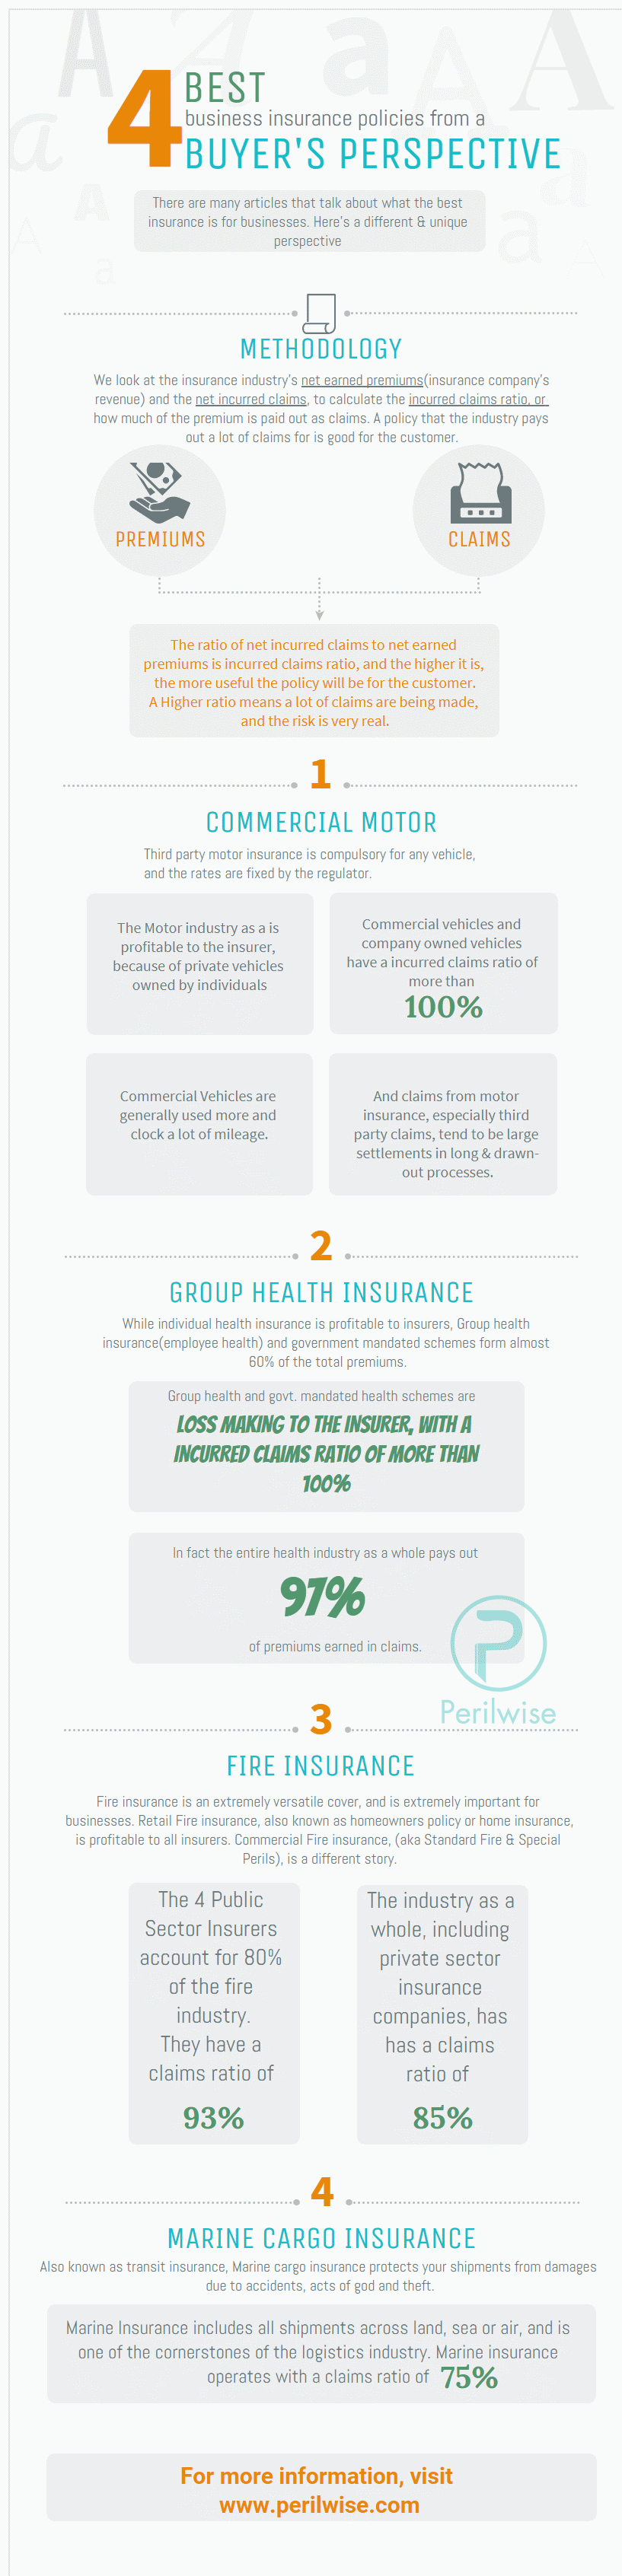 The 4 Best Business Insurance Policies Infographic Business